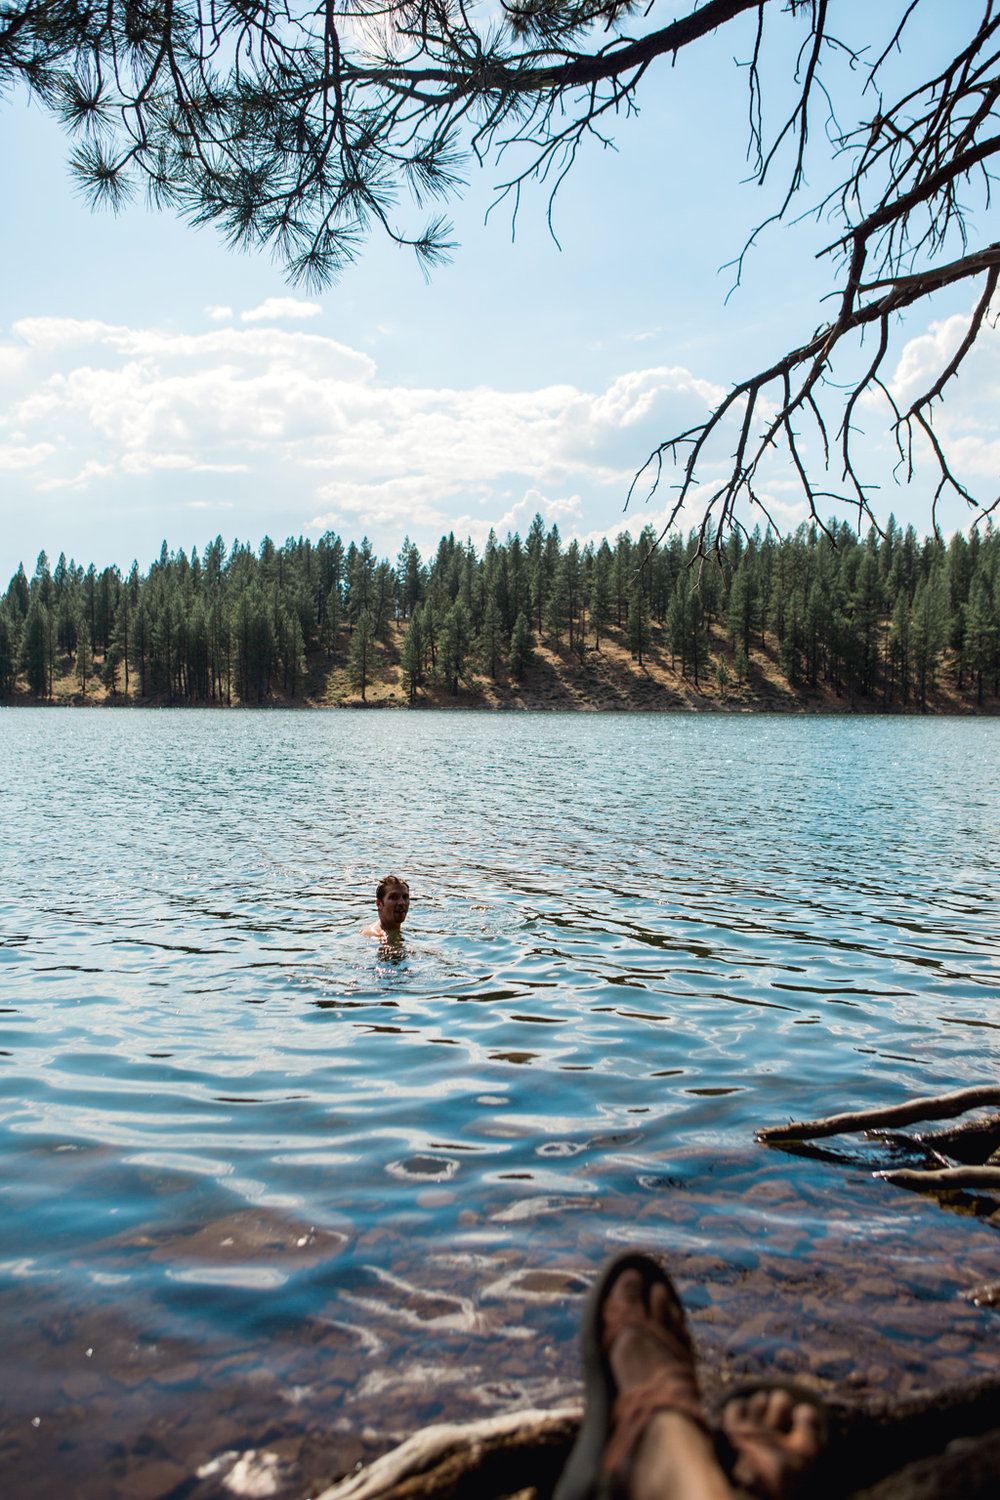 CindyGiovagnoli_Reno_Tahoe_Nevada_Boca_Stampede_Reservoir_outdoors_summer_swimming_hammock-006.jpg